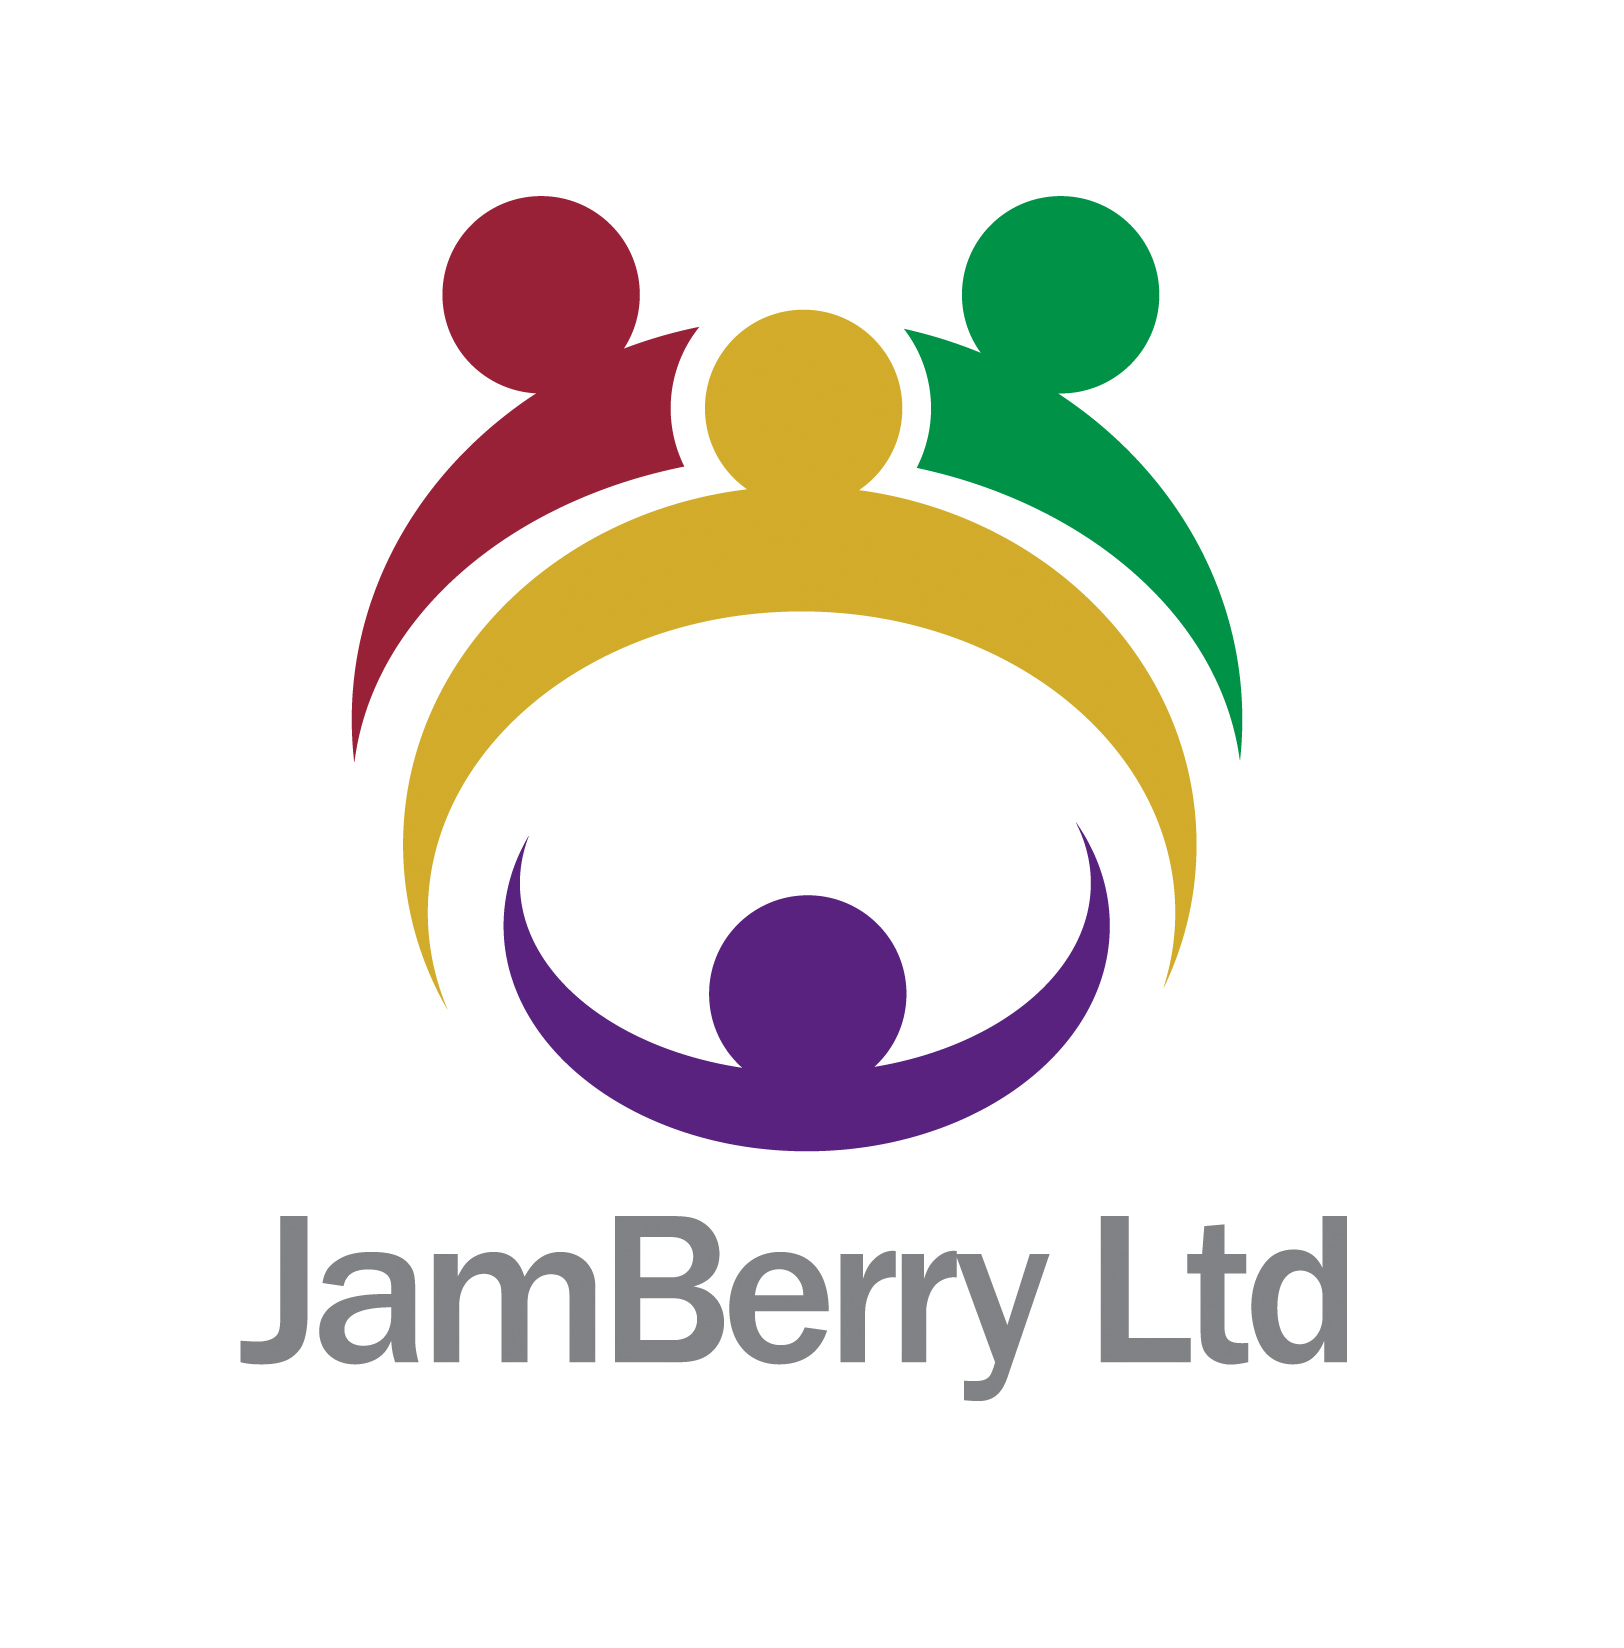 JamBerry Ltd - Management Development, Coaching and Health and Safety